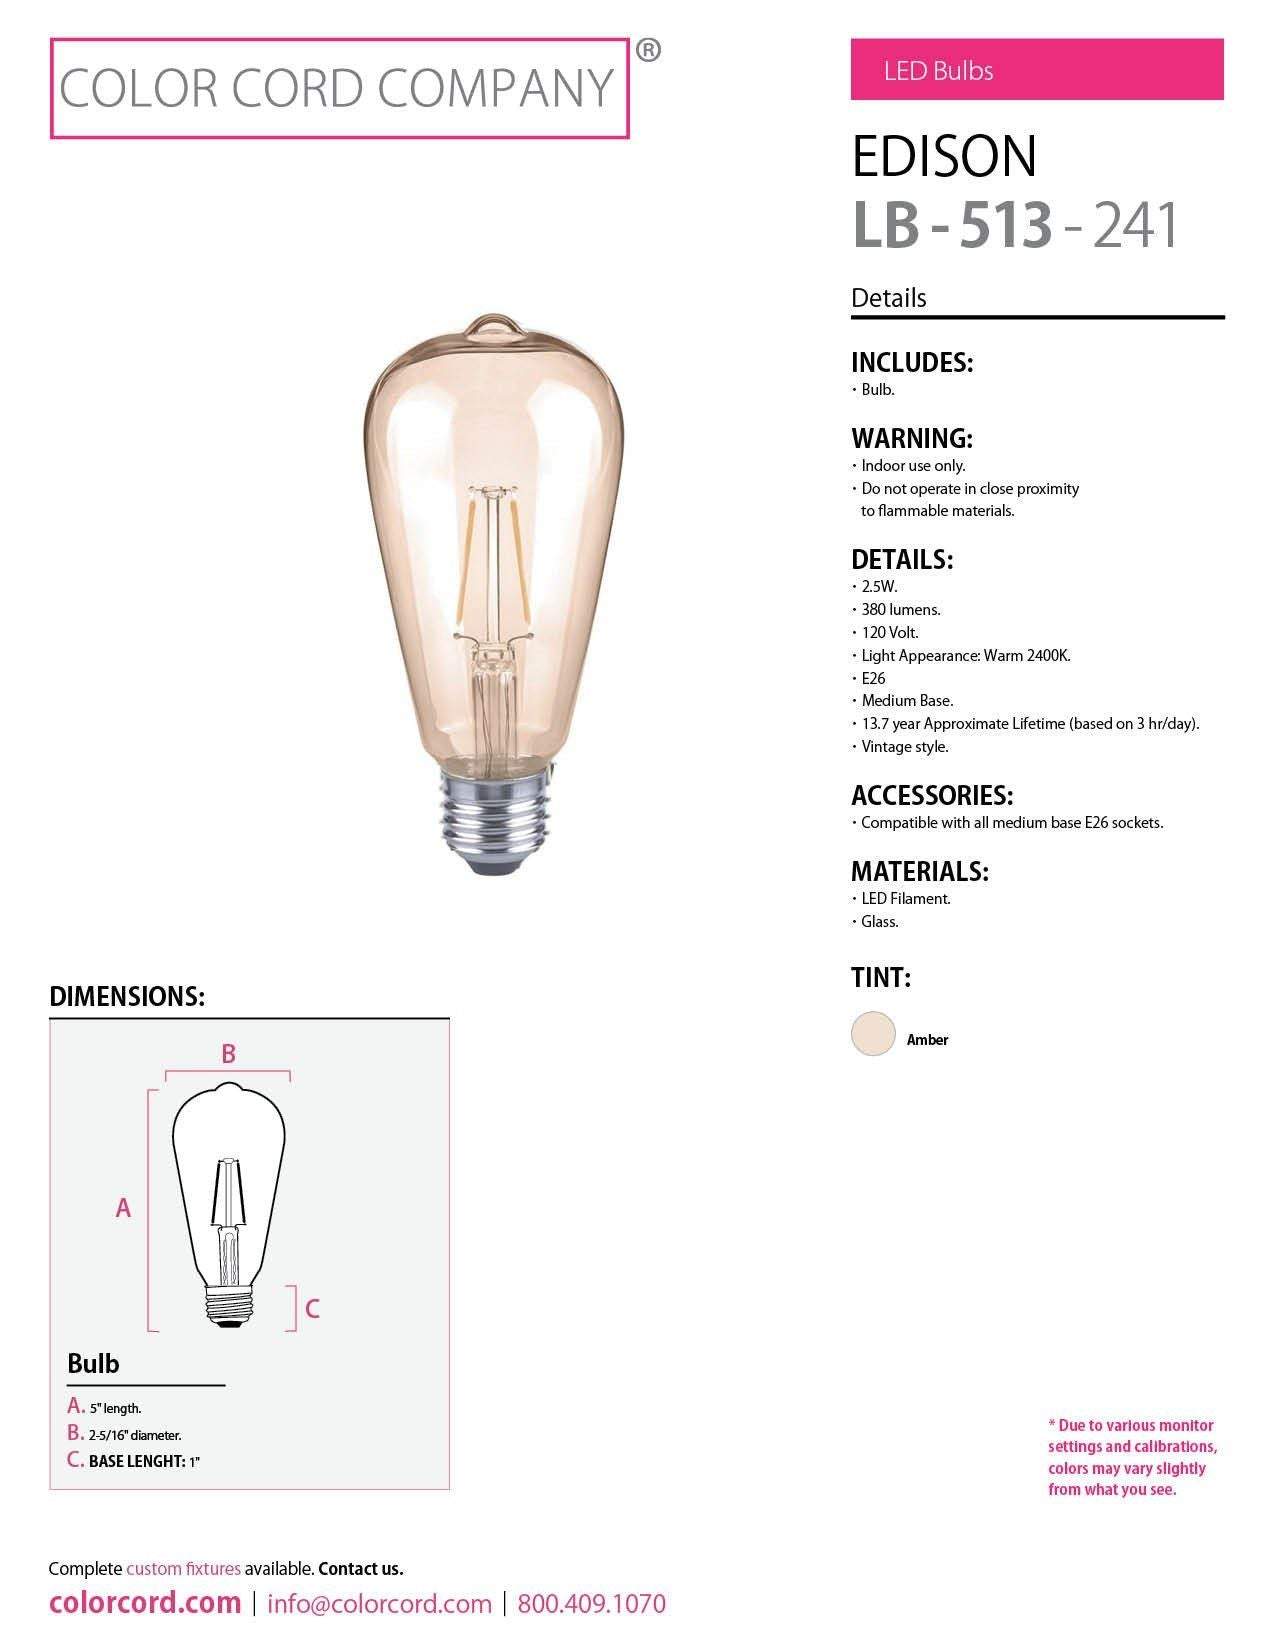 Edison Led Bulb Amber 25w Color Cord Company Diagram Of The Incandescent Light How Flourescent